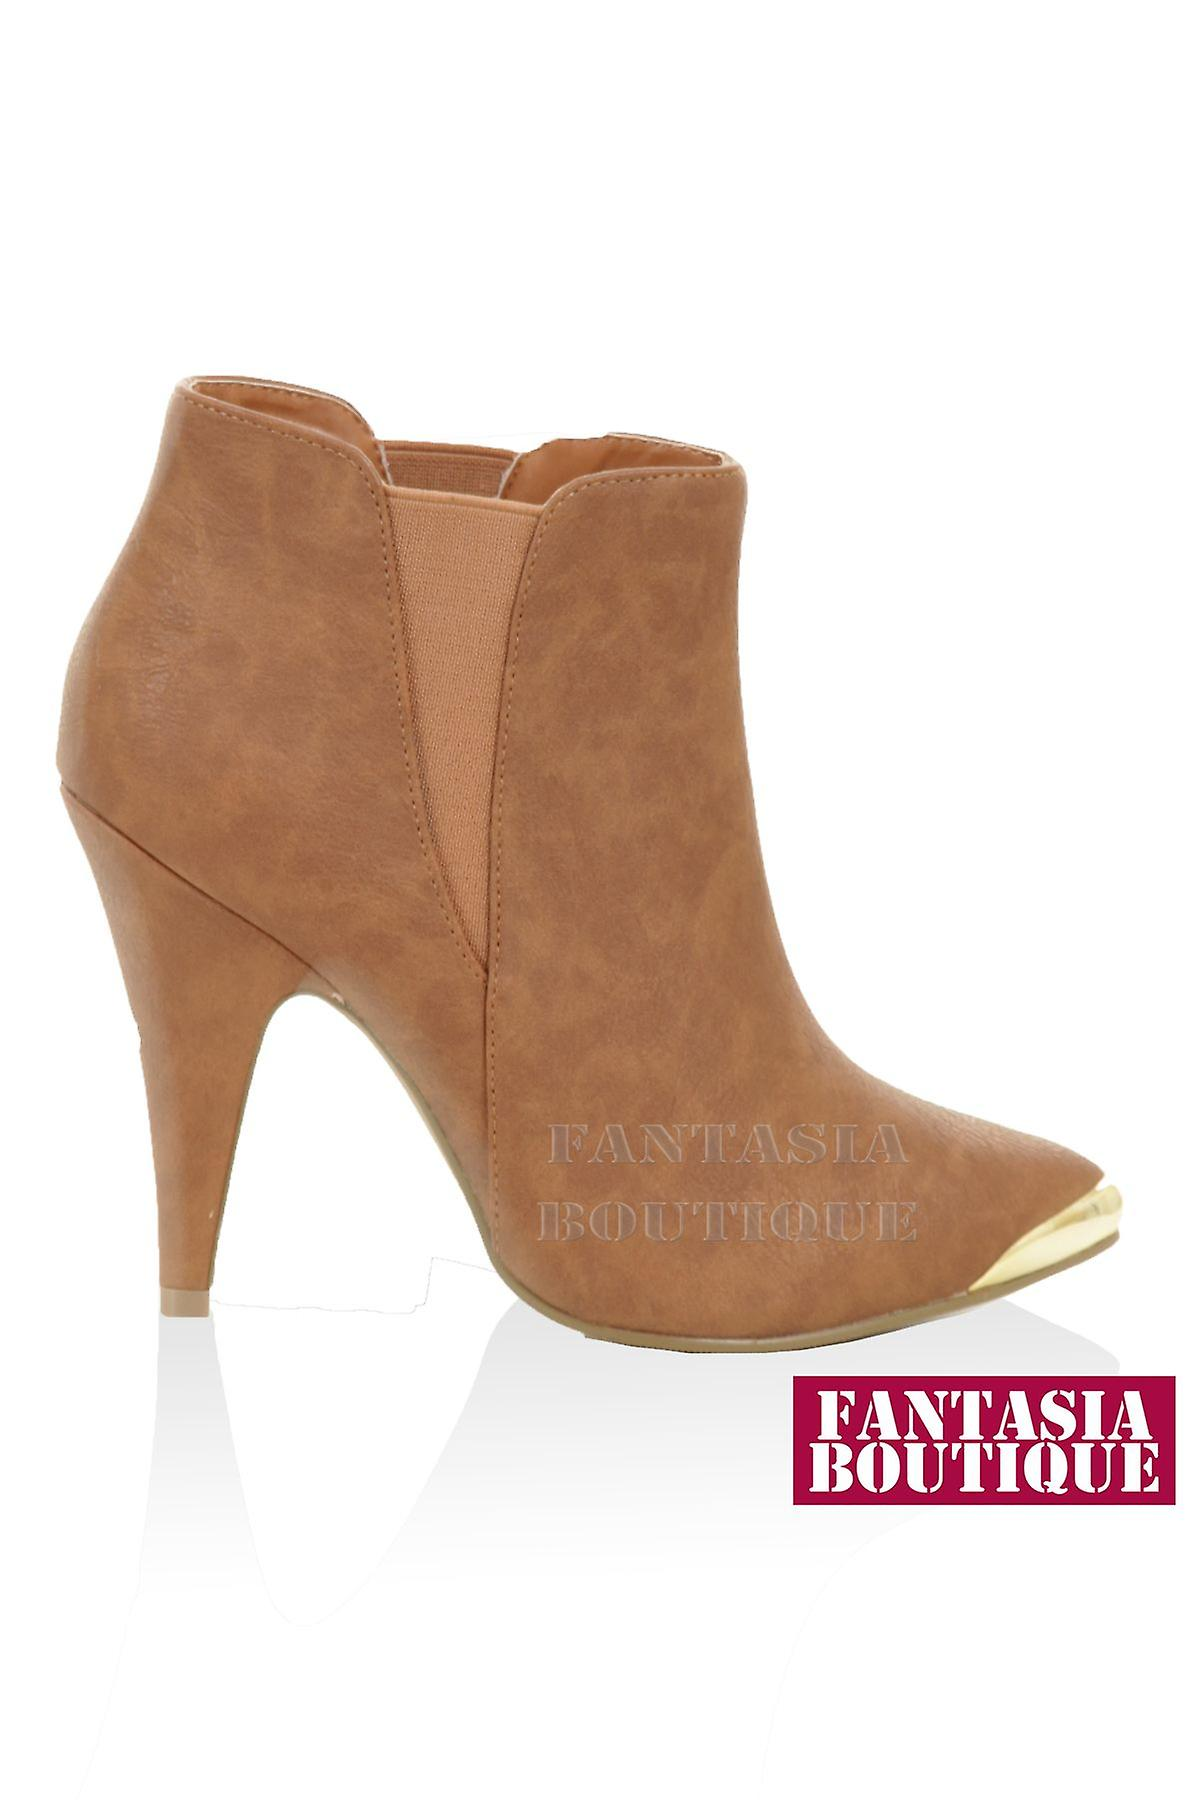 Ladies High Heel Pointed Gold Toe Pull On Suede Matt Chelsea Women's Ankle Boots